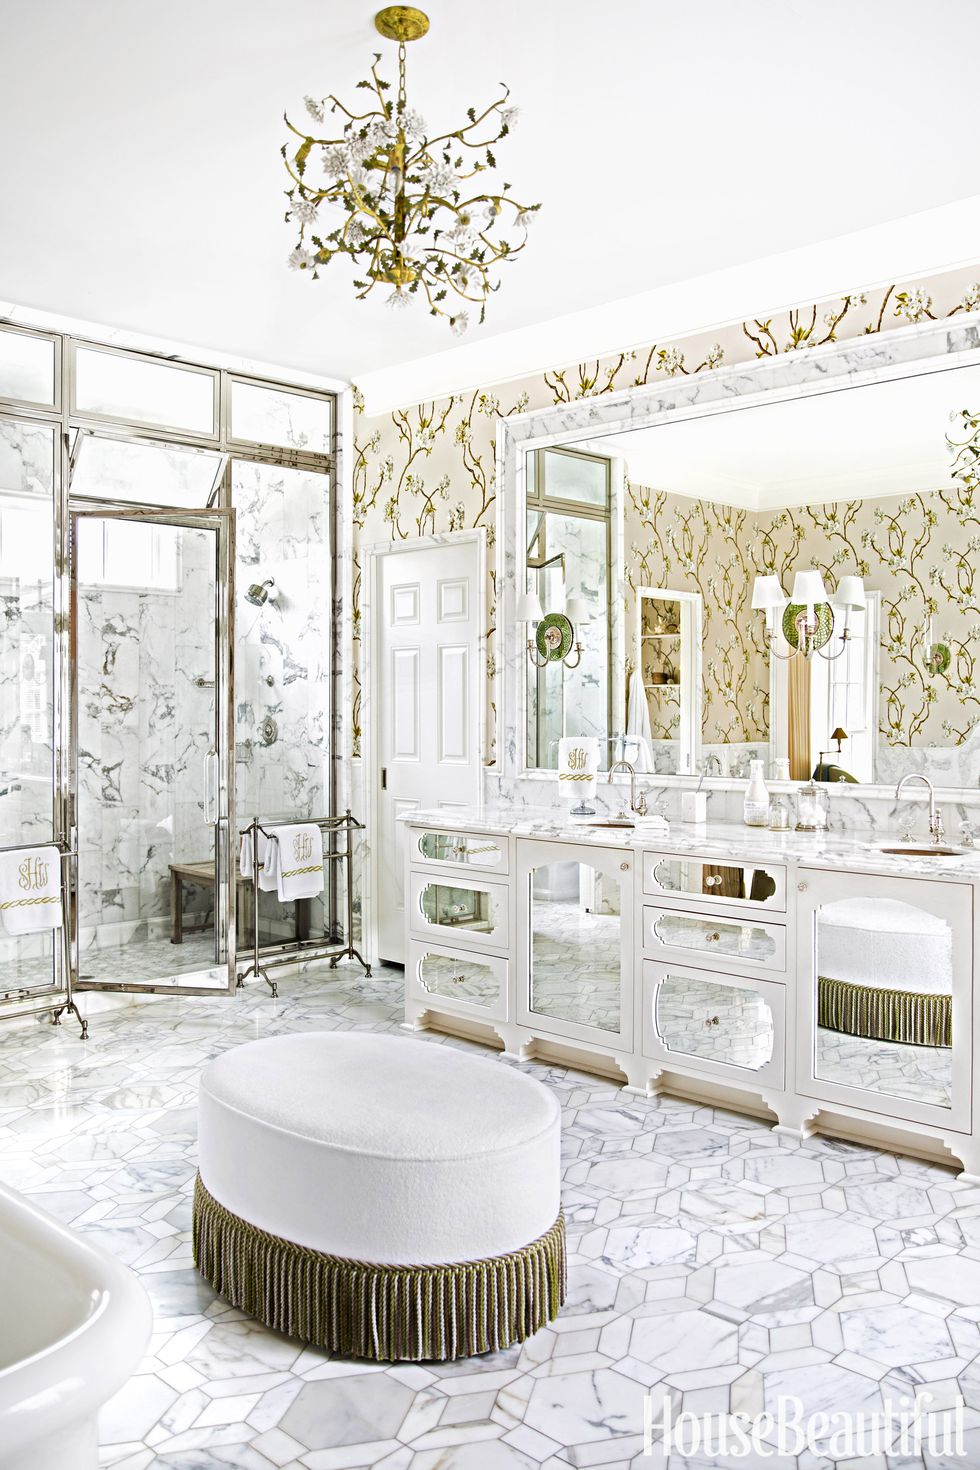 Glitzy bathroom chandelier